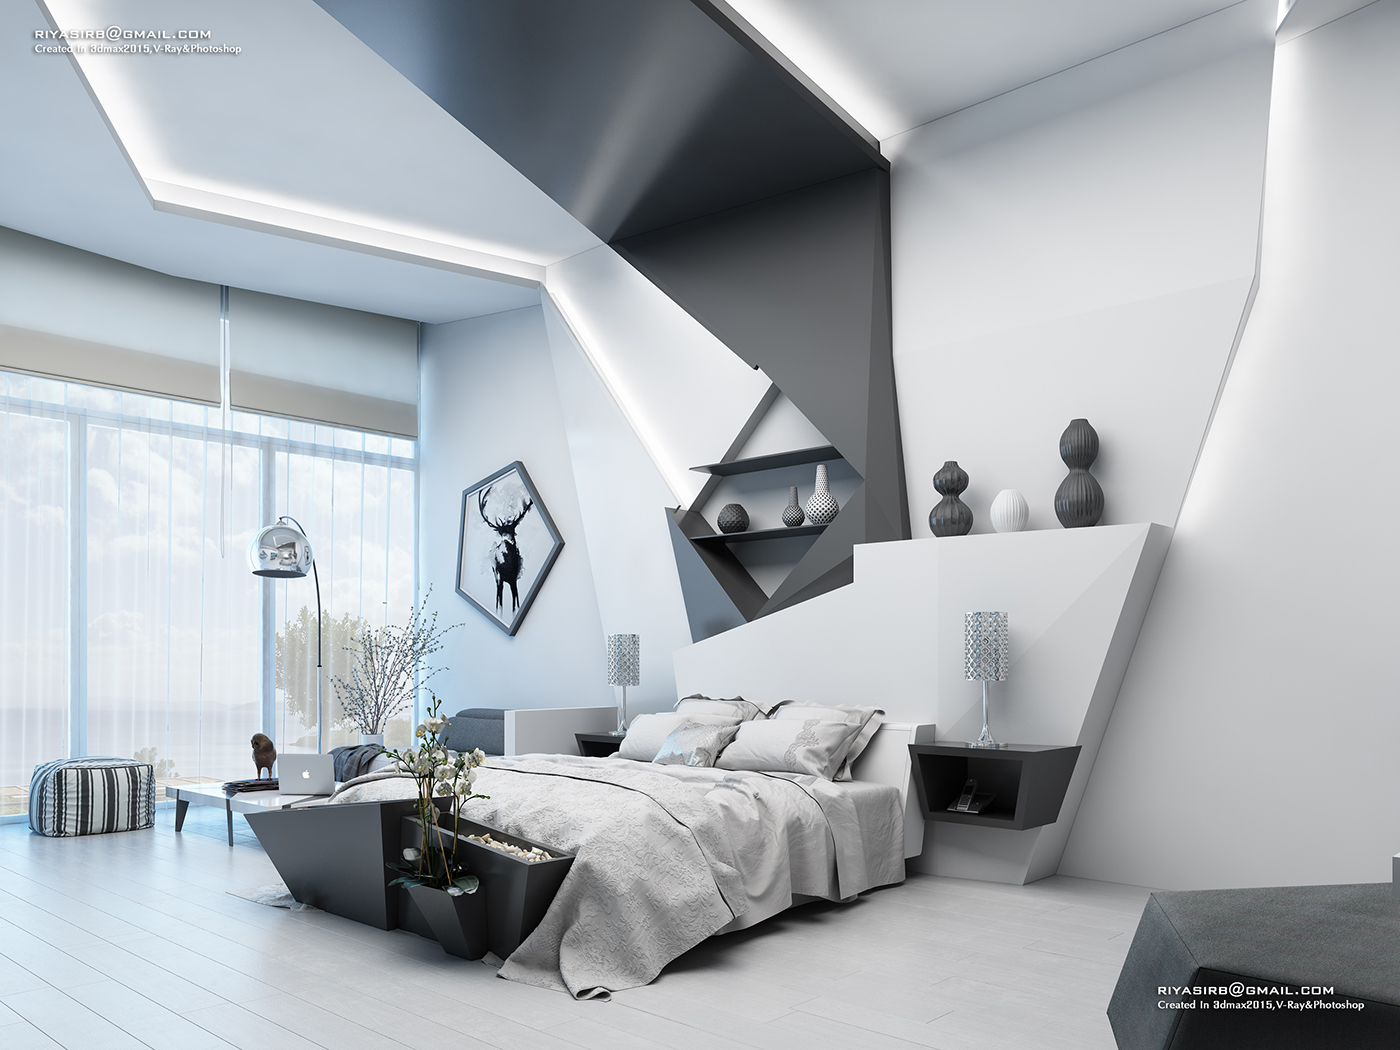 Charmant Futuristic Bedroom Design On Behance